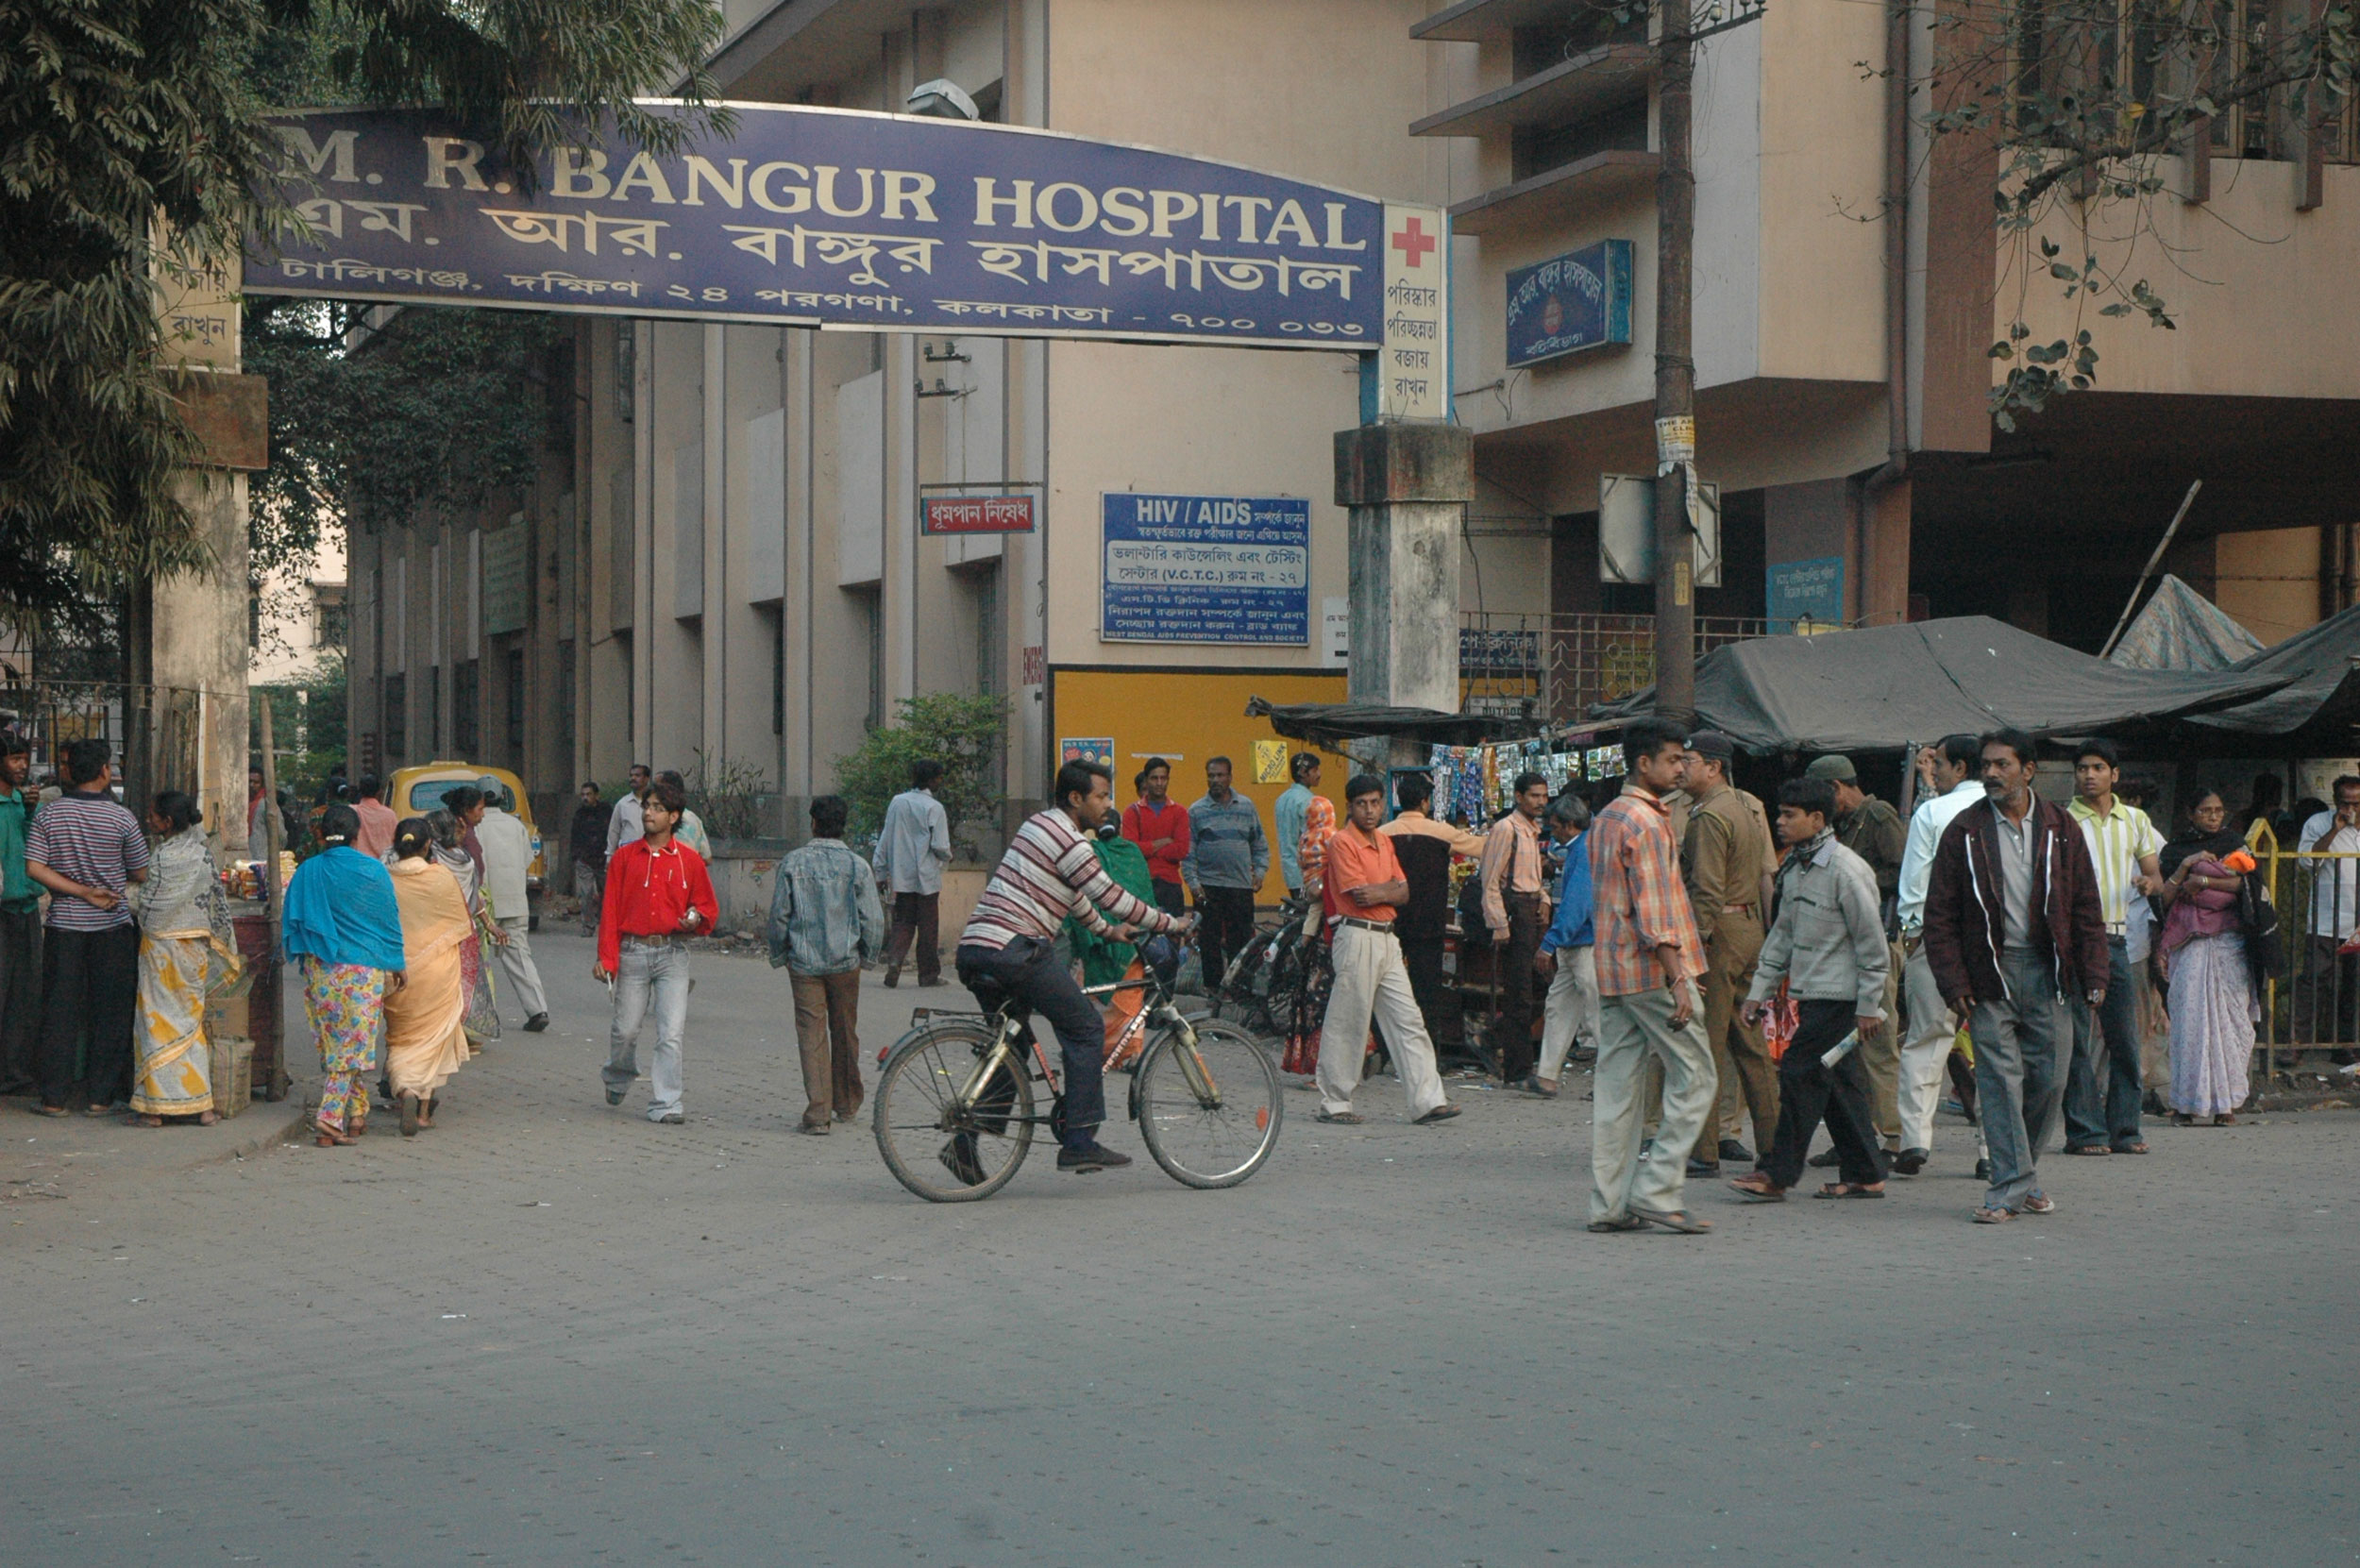 MR Bangur Hospital: The man, wearing a medical gown with a catheter attached, was spotted sitting alone on the pavement by a hospital employee and taken inside. The hospital has alerted police, who are trying to track details of the ambulance.